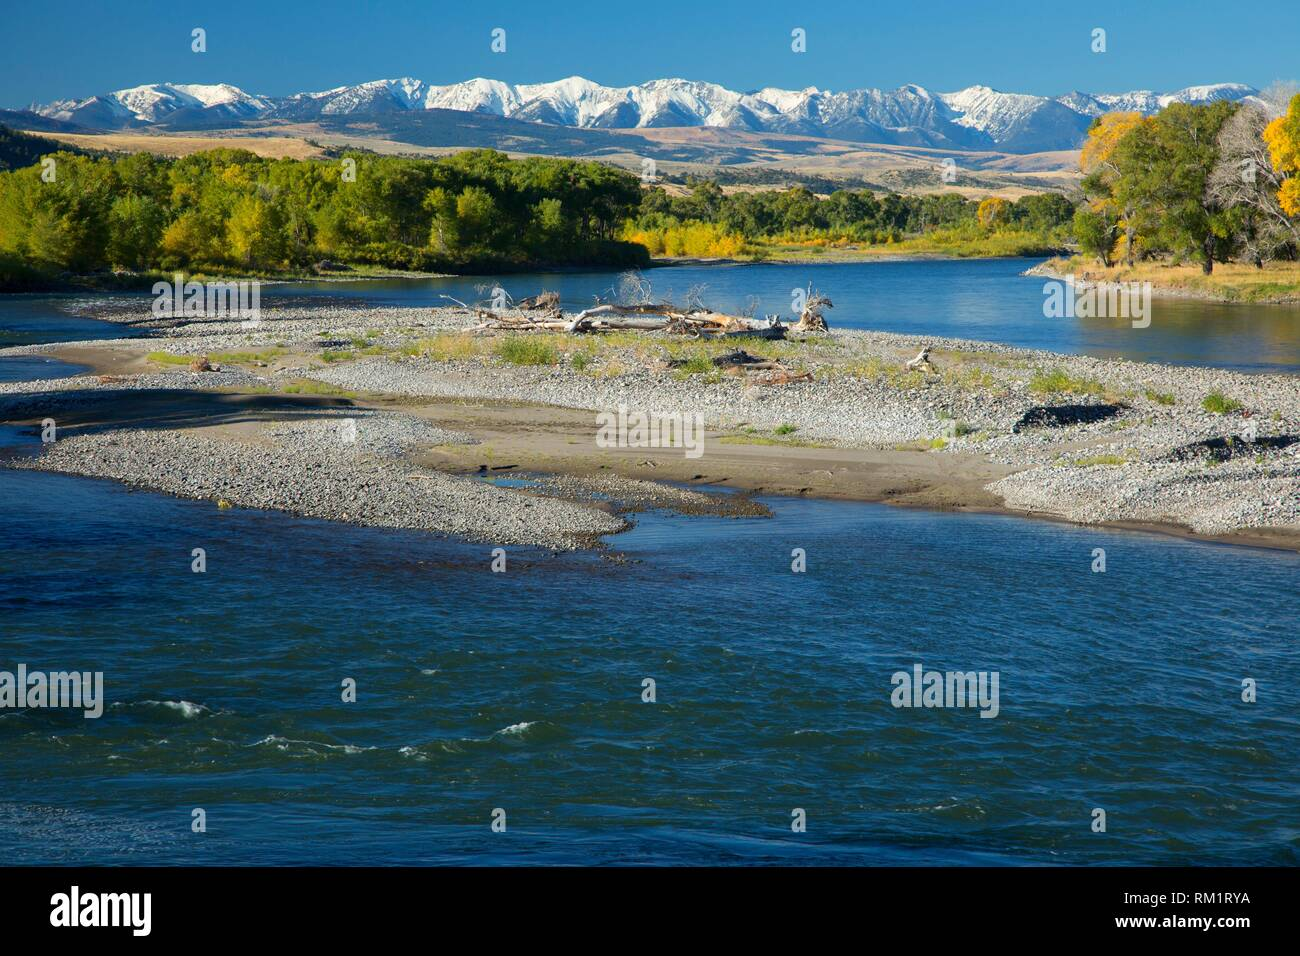 Yellowstone River, Springdale Fishing Access Site, Park County, Montana. - Stock Image